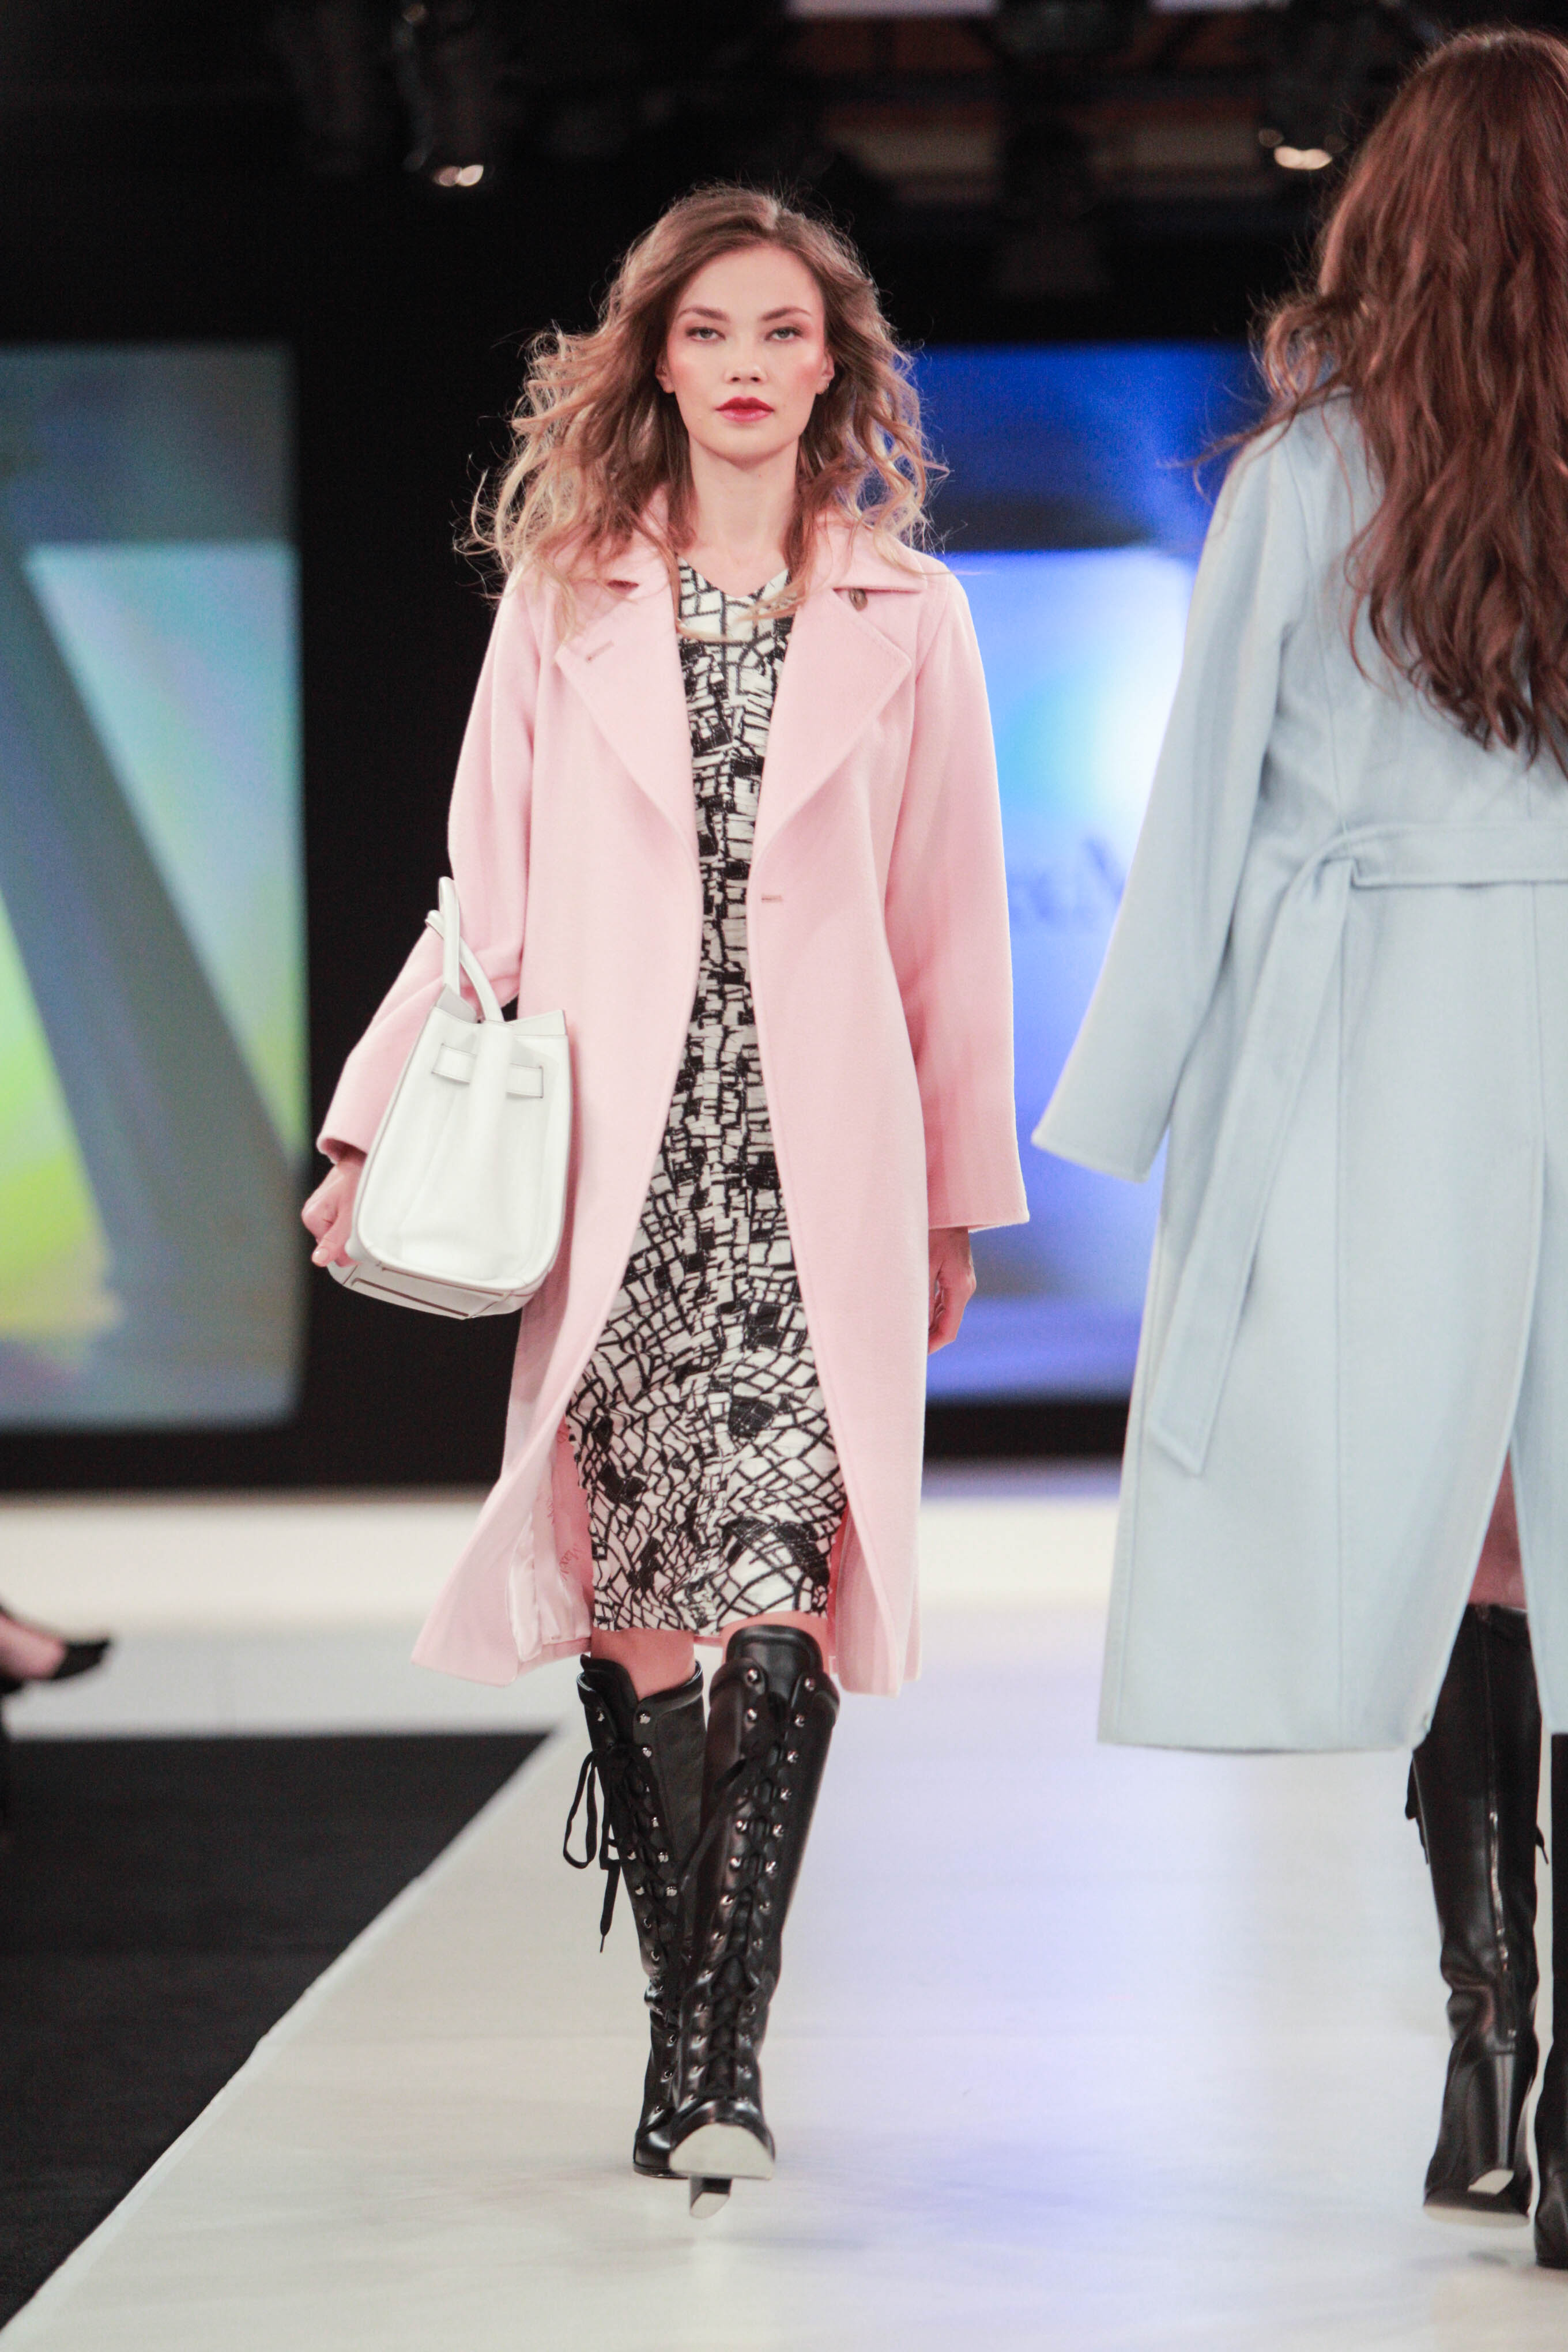 The best in fall fashion will come to life at The Collective Runway Show on September 22.